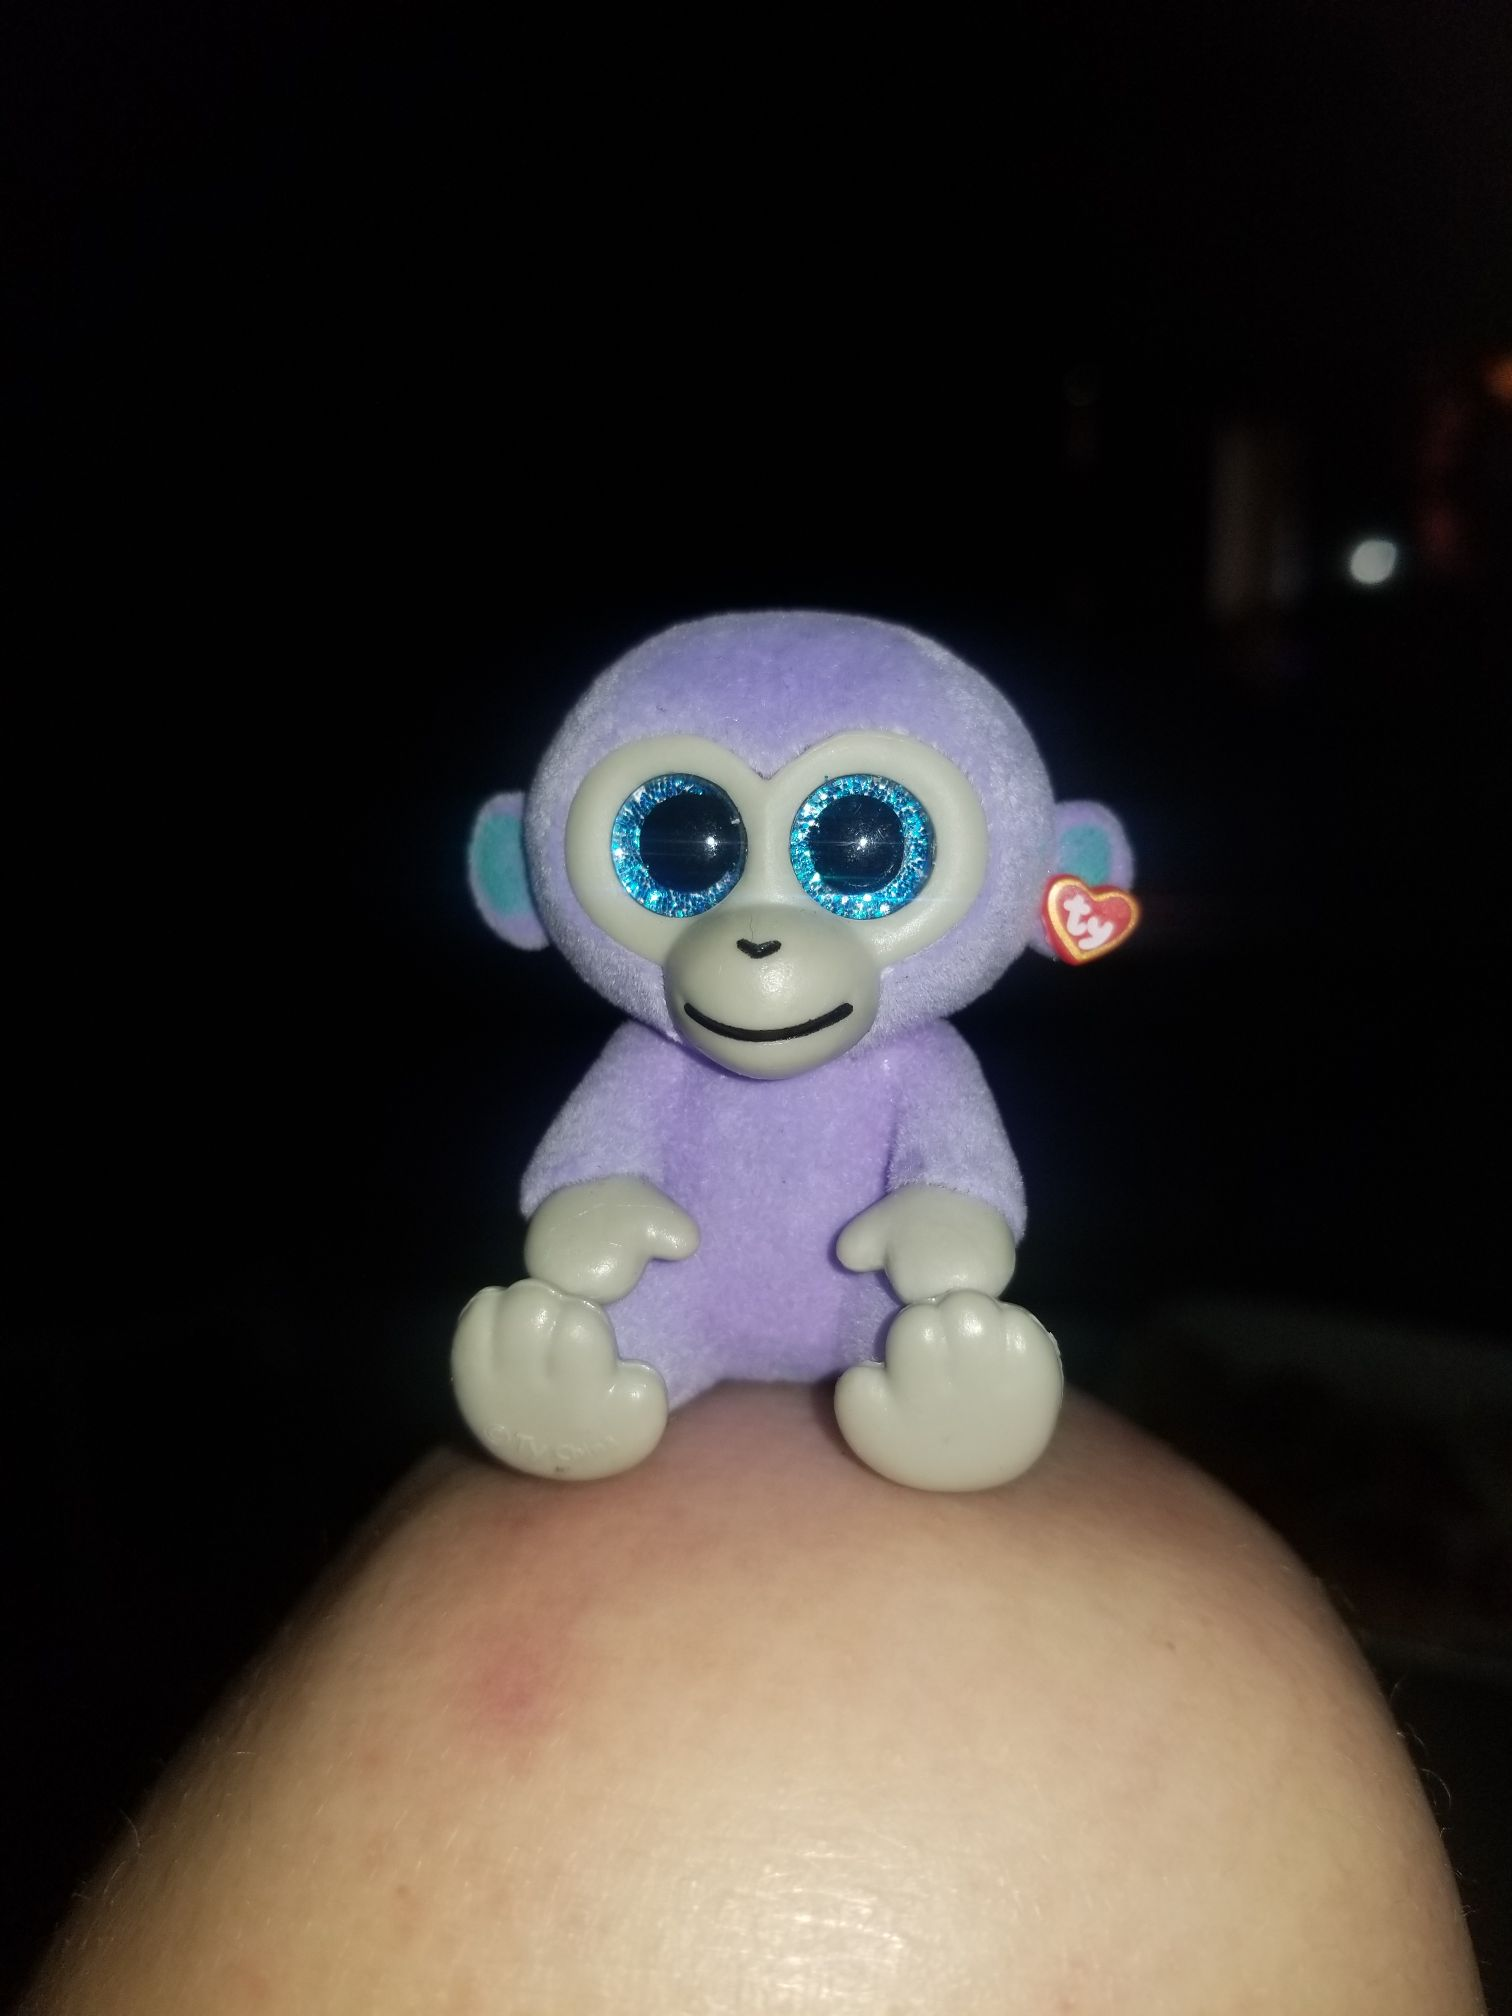 Blueberry Mini Boo Beanie Baby (25002) front image (front cover)